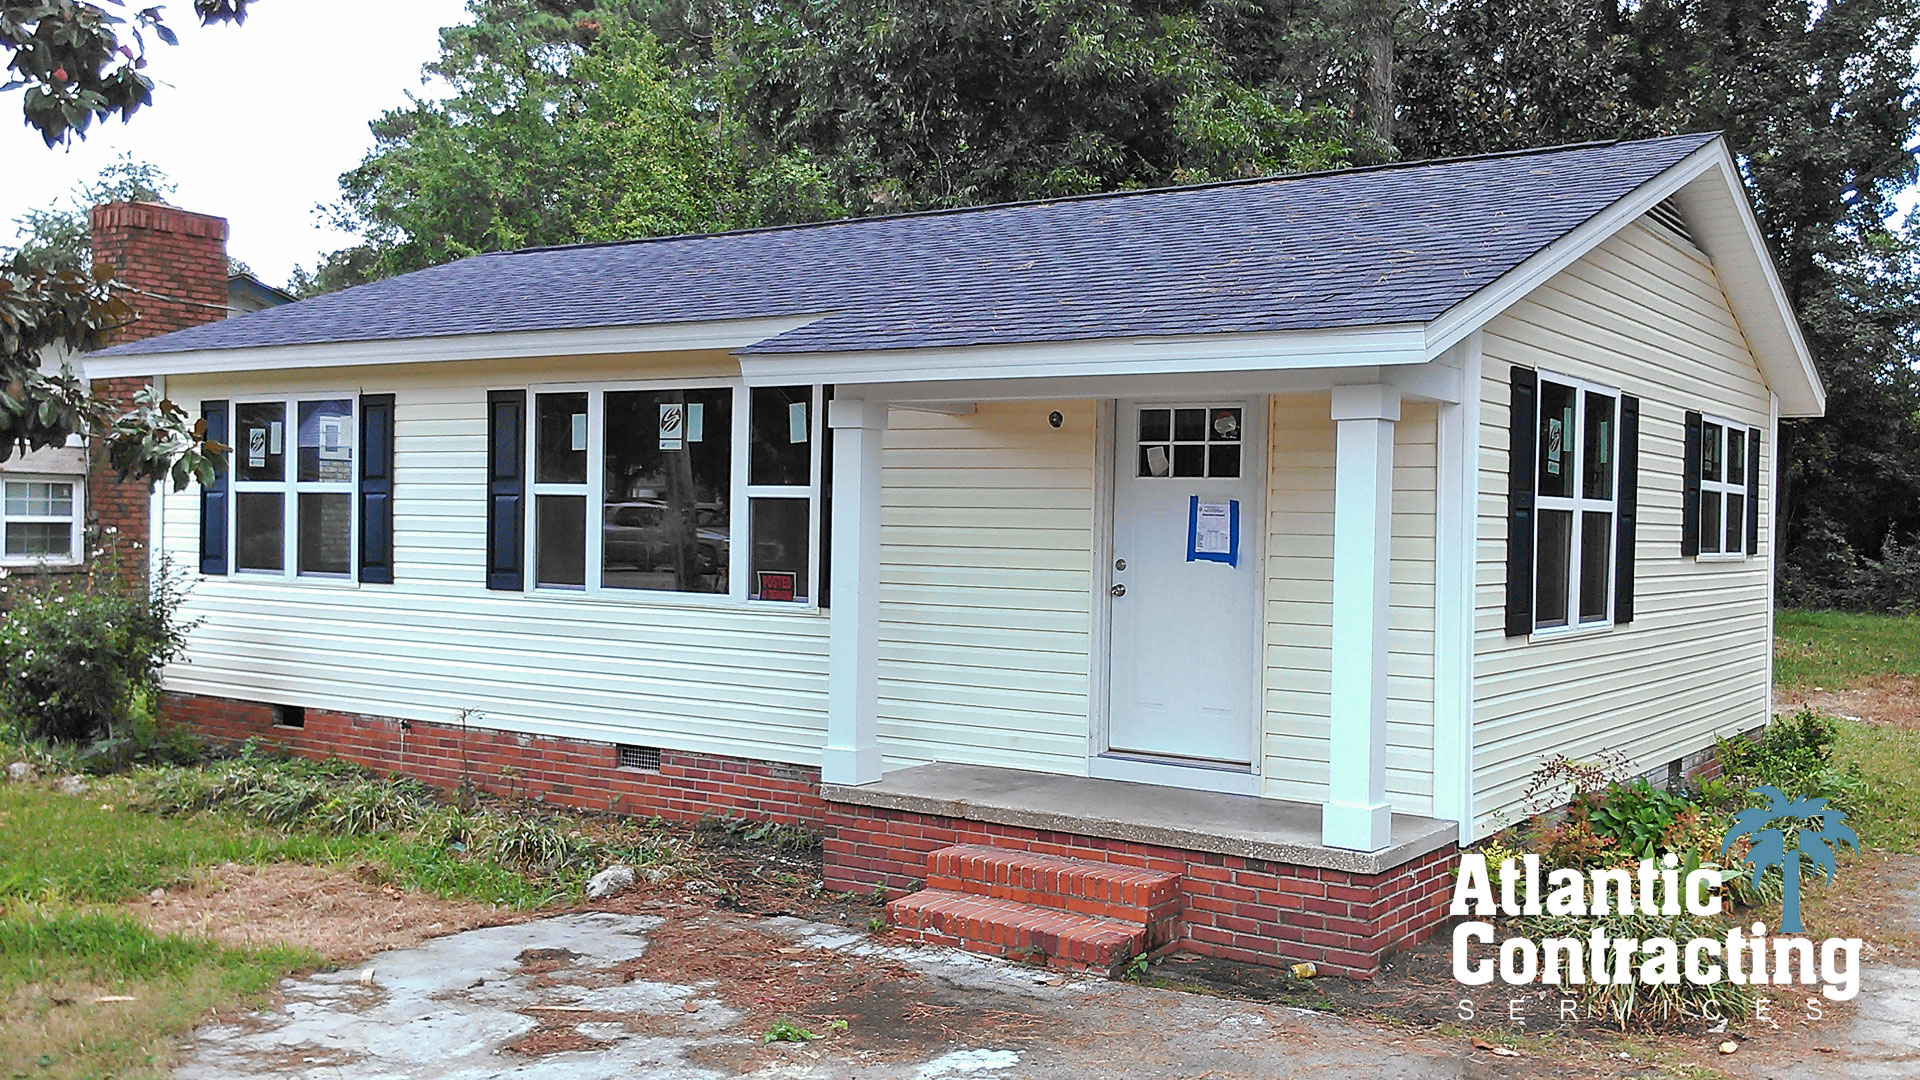 Myrtle beach siding installer myrtle beach exterior building renovation specialist atlantic for Exterior remodeling specialists